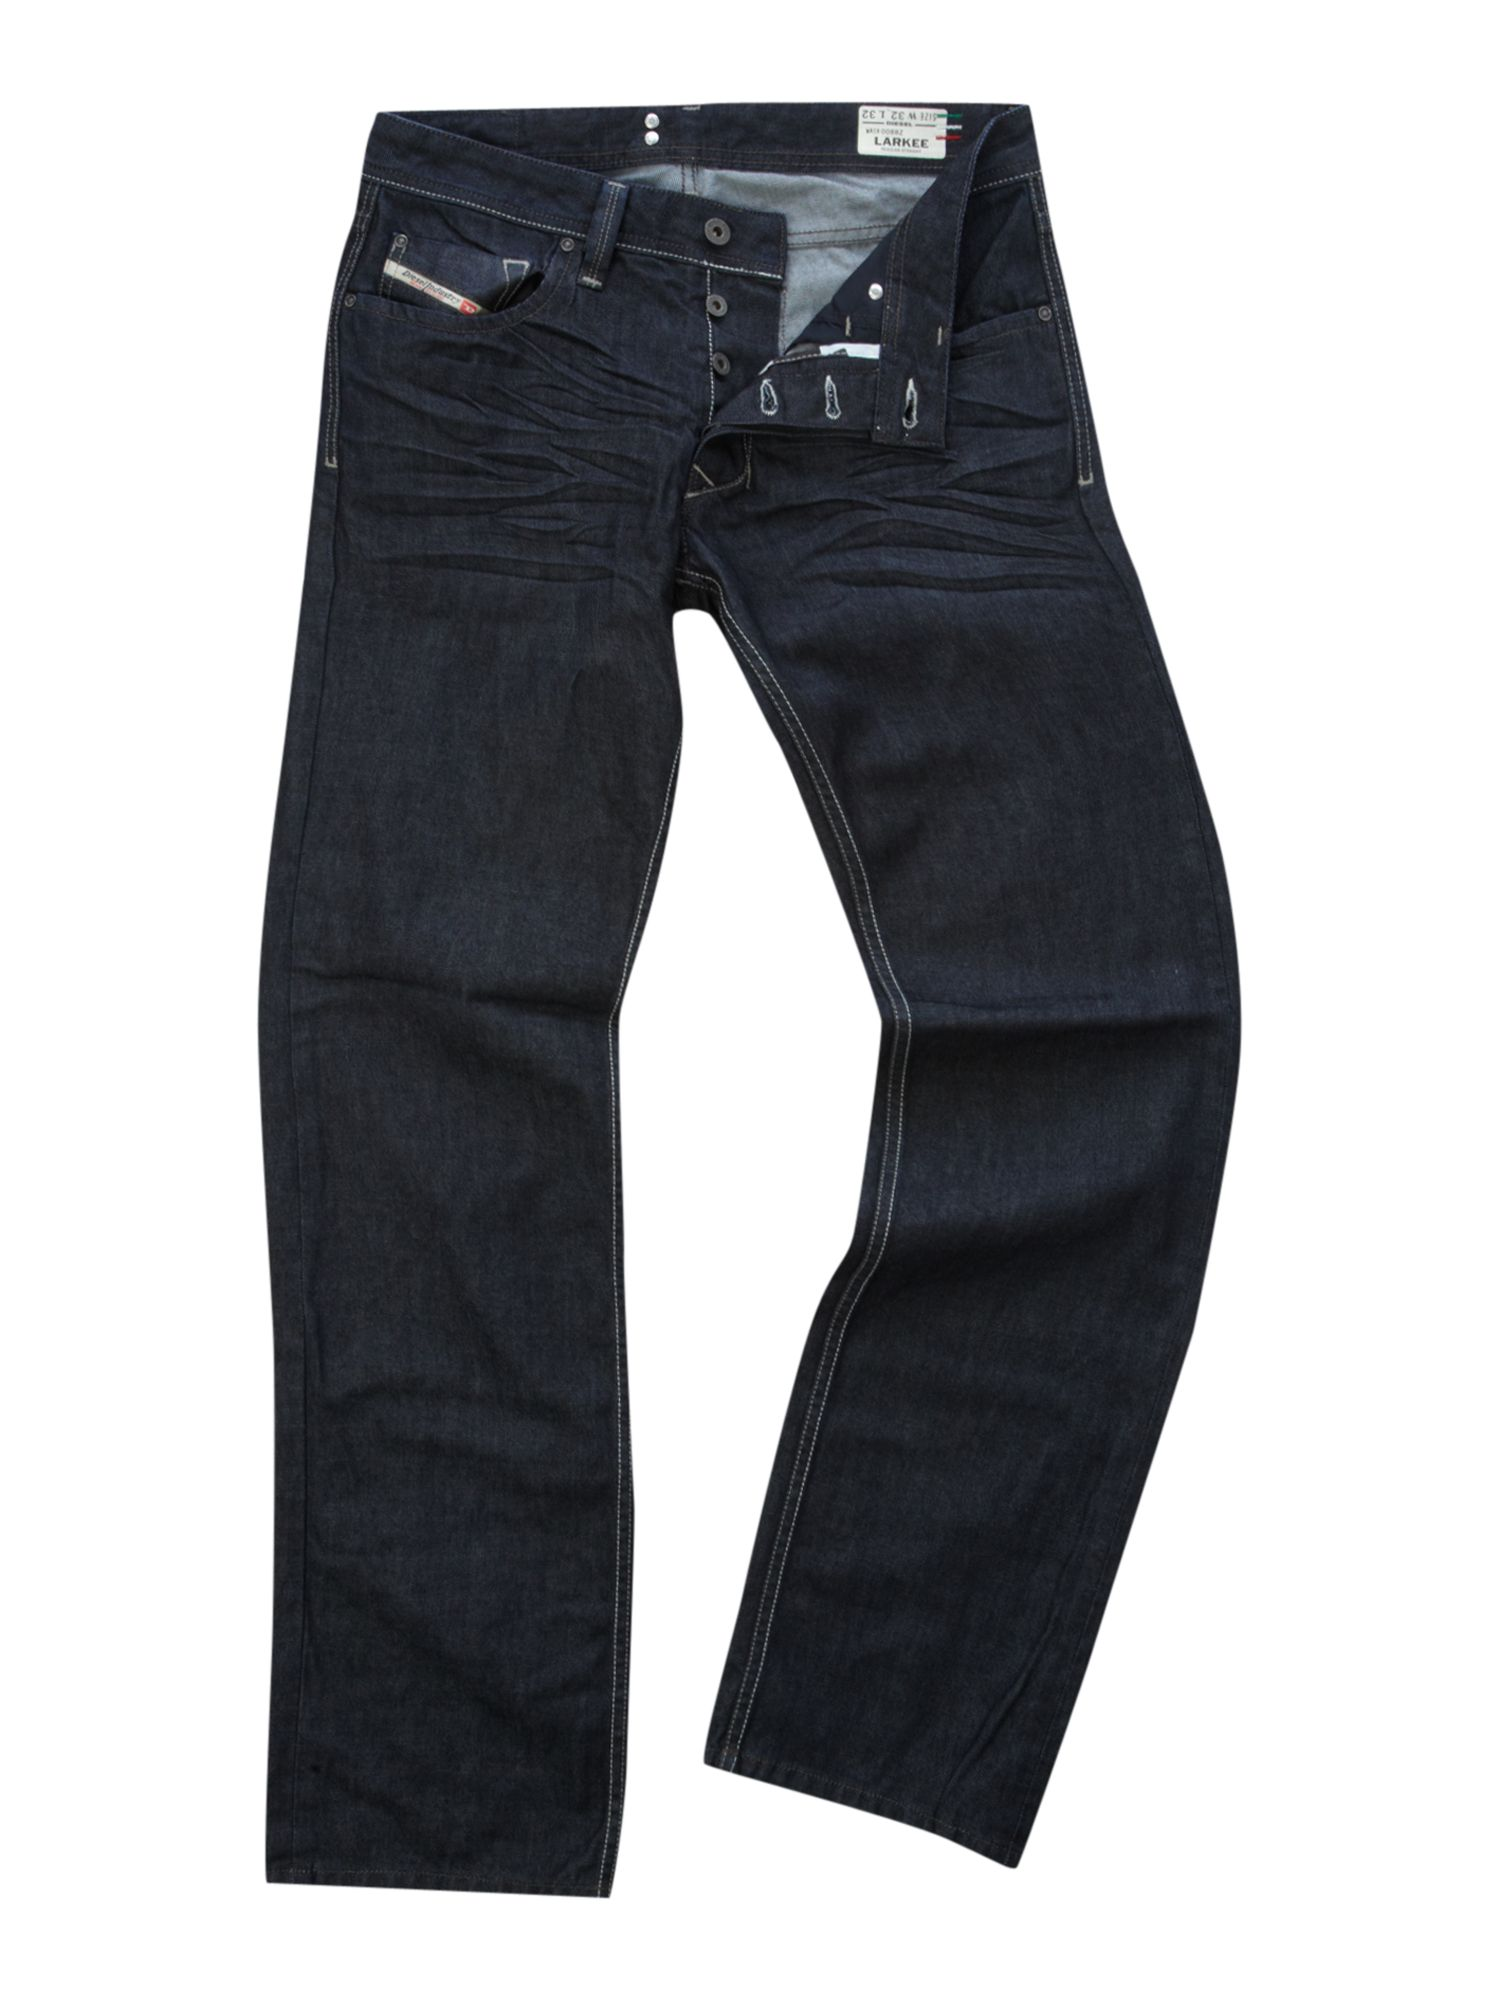 Larkee 88Z Straight Dark Wash Jeans